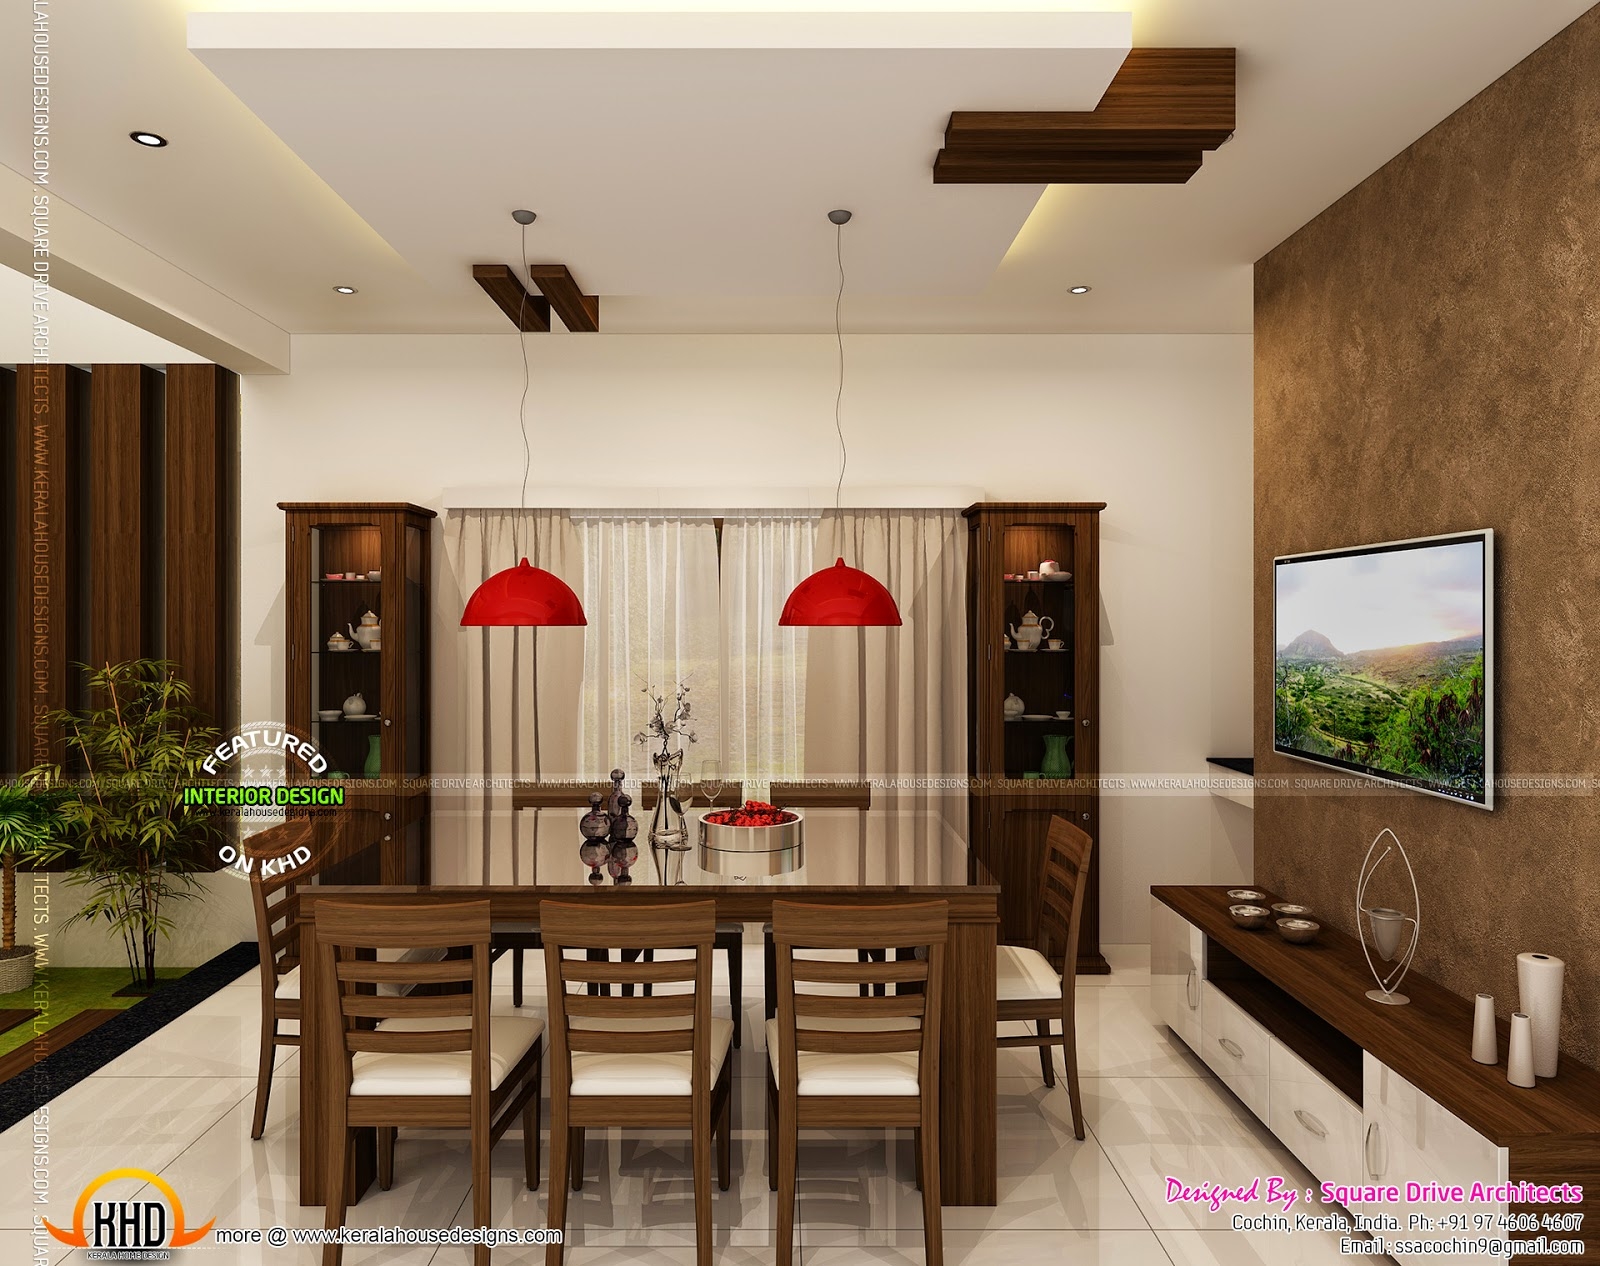 Luxury interior designs in kerala keralahousedesigns for I need an interior design for my home